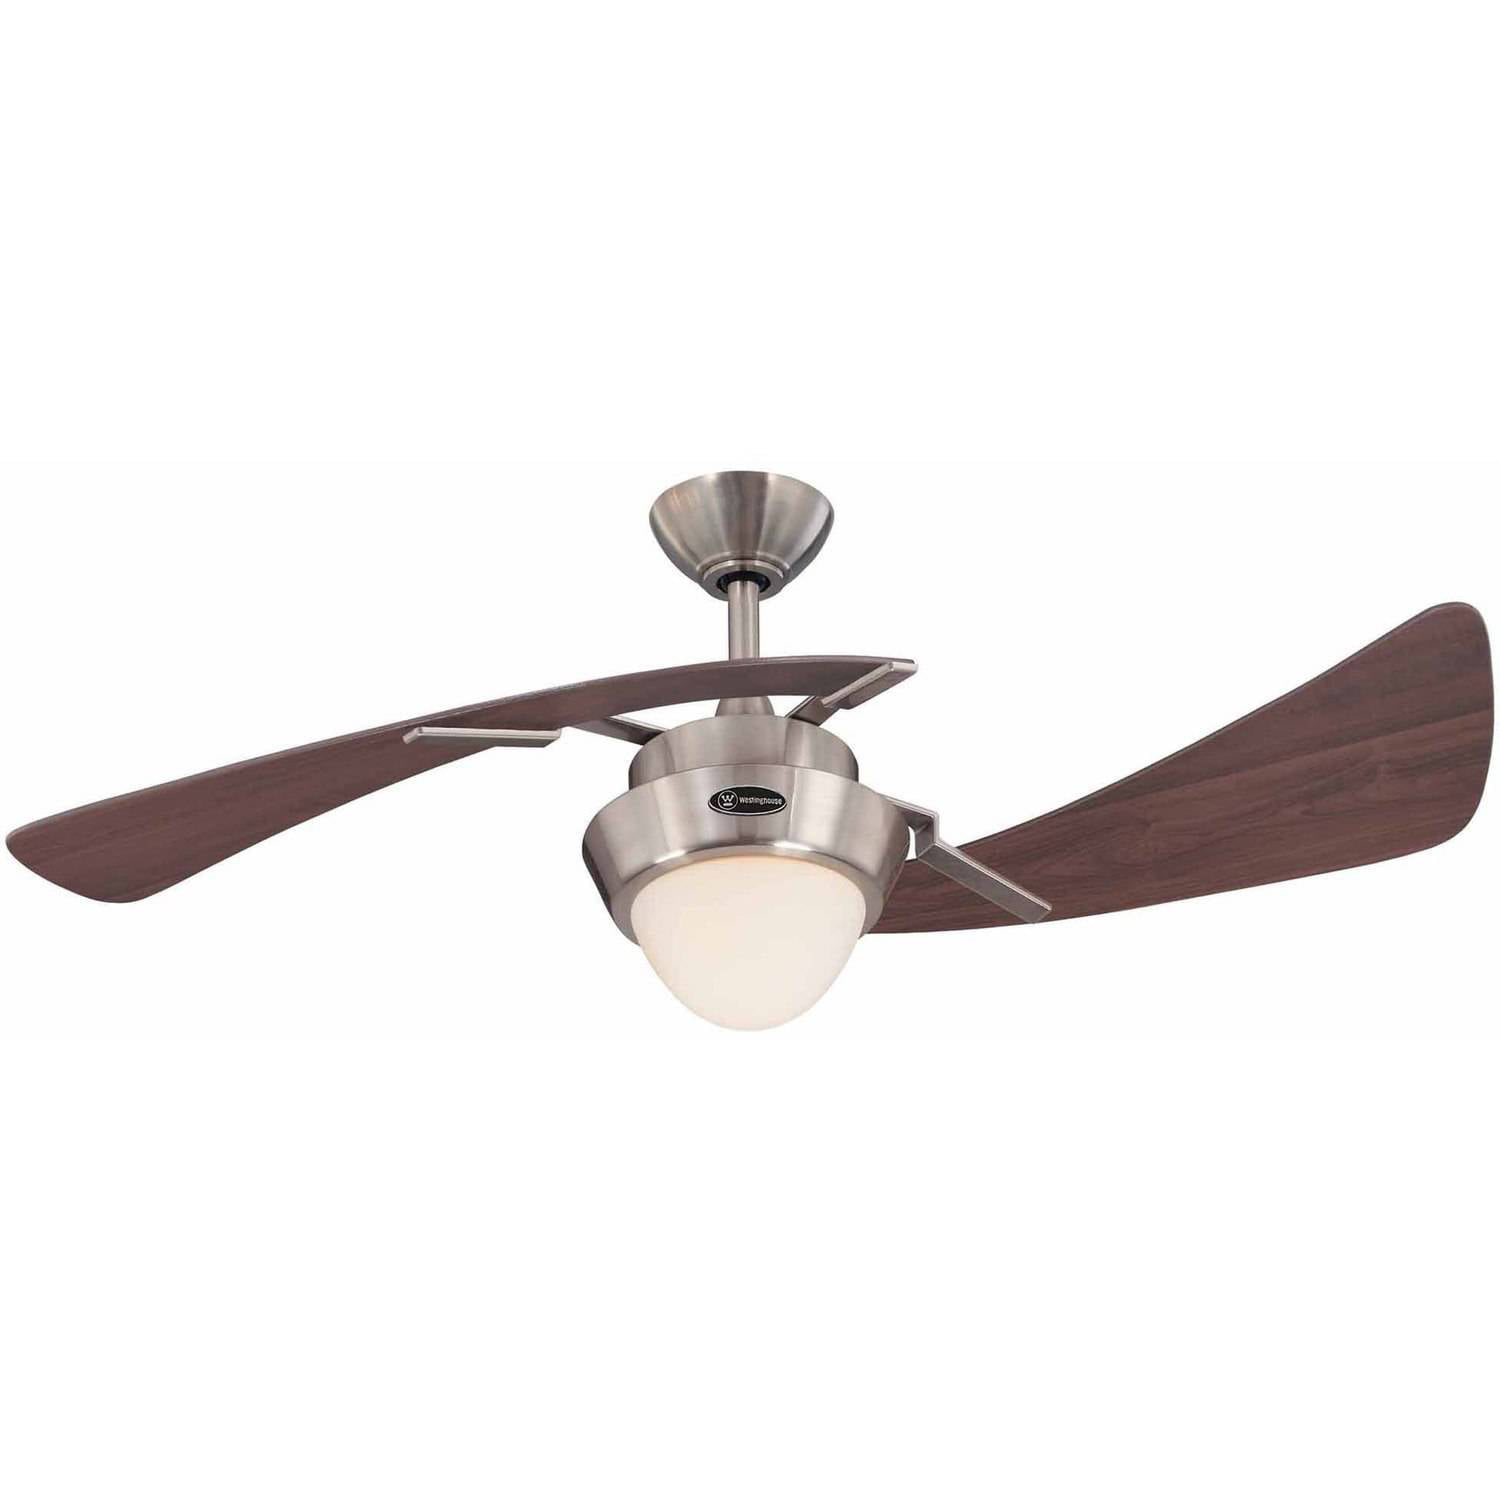 Harmony 48 Inch Two Blade Indoor Ceiling Fan